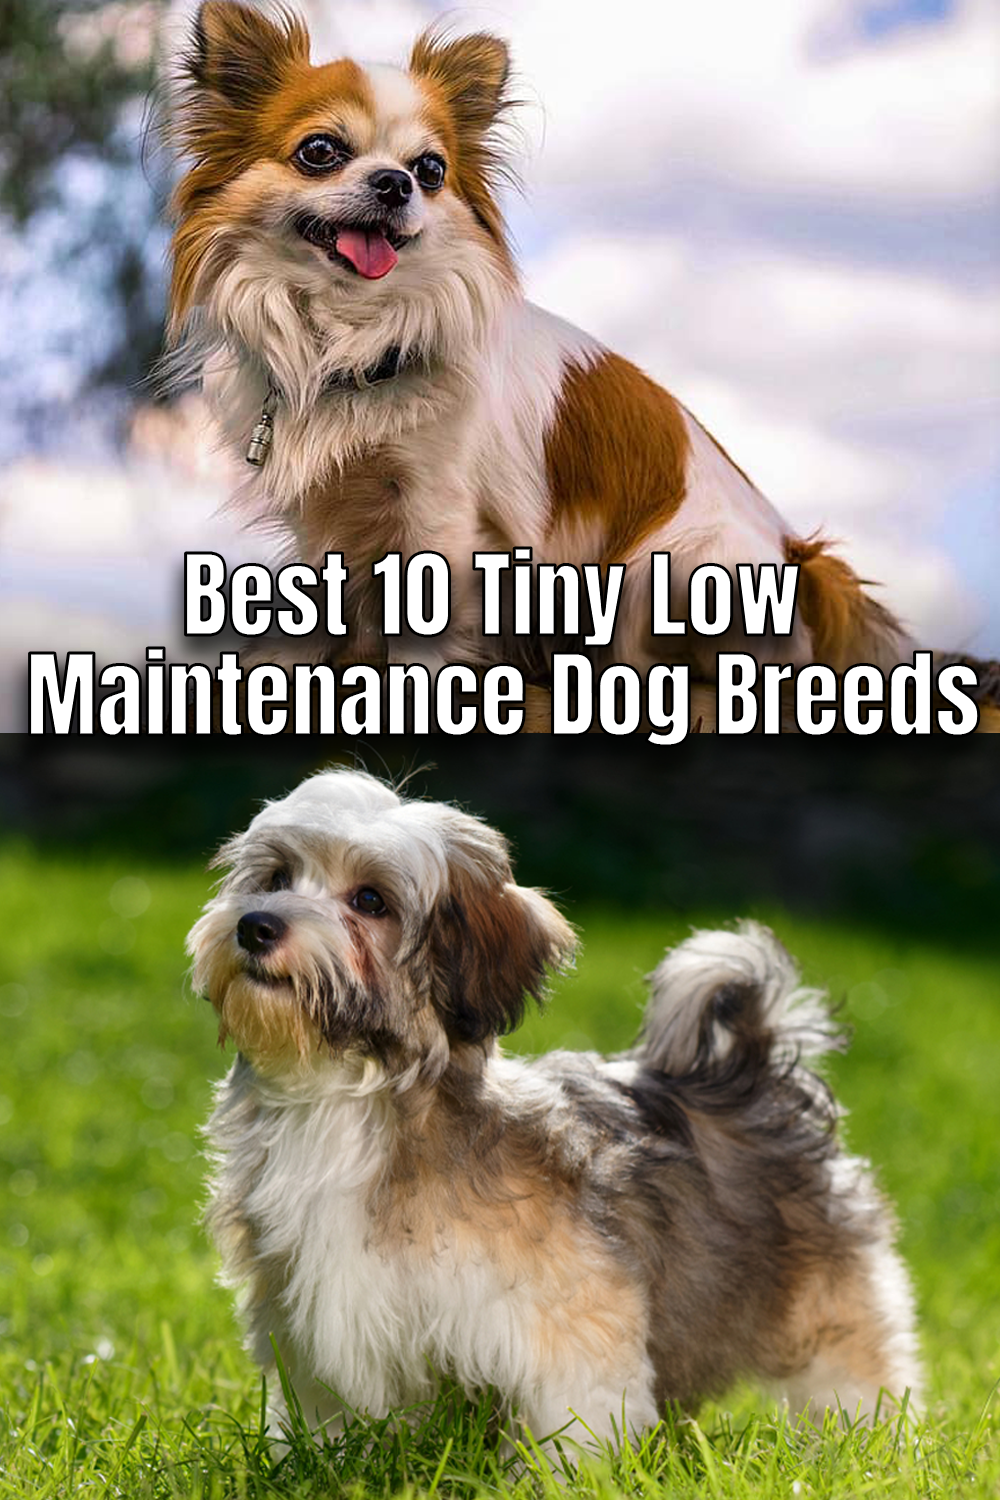 Best 10 Tiny Low Maintenance Dog Breeds In 2020 Low Maintenance Dog Breeds Dogs Dog Breeds